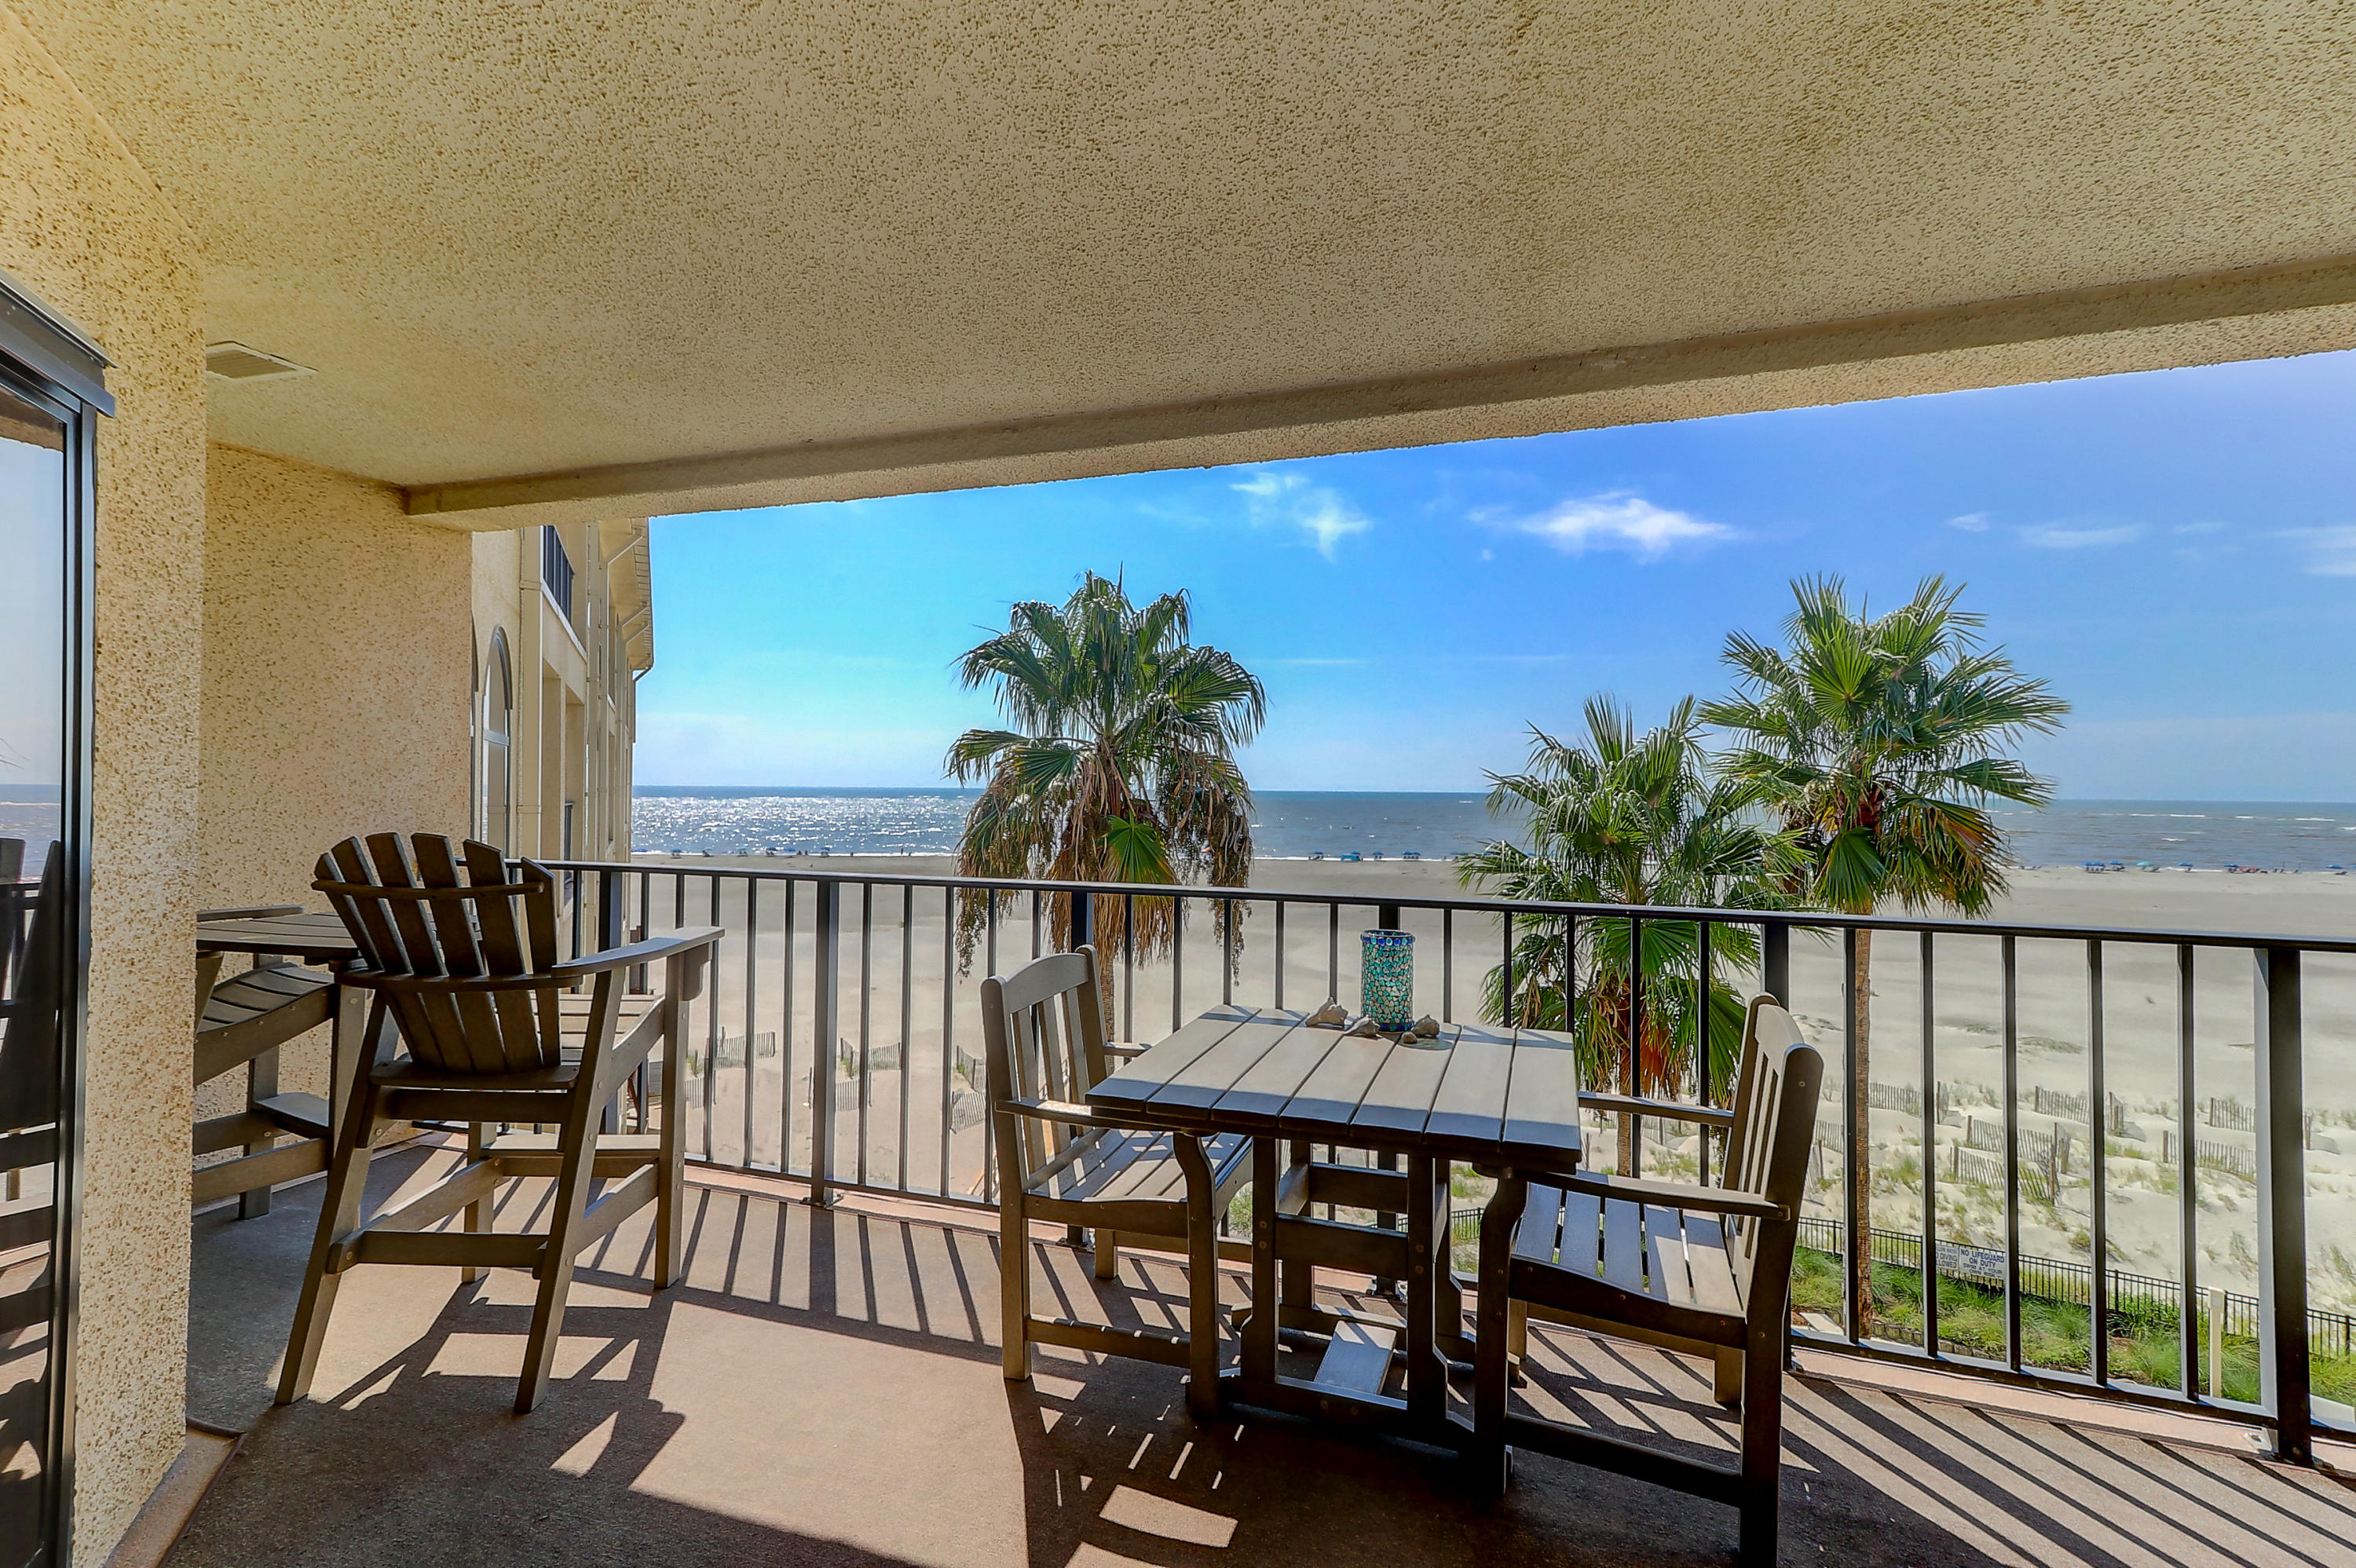 415 Seascape Isle Of Palms, SC 29451